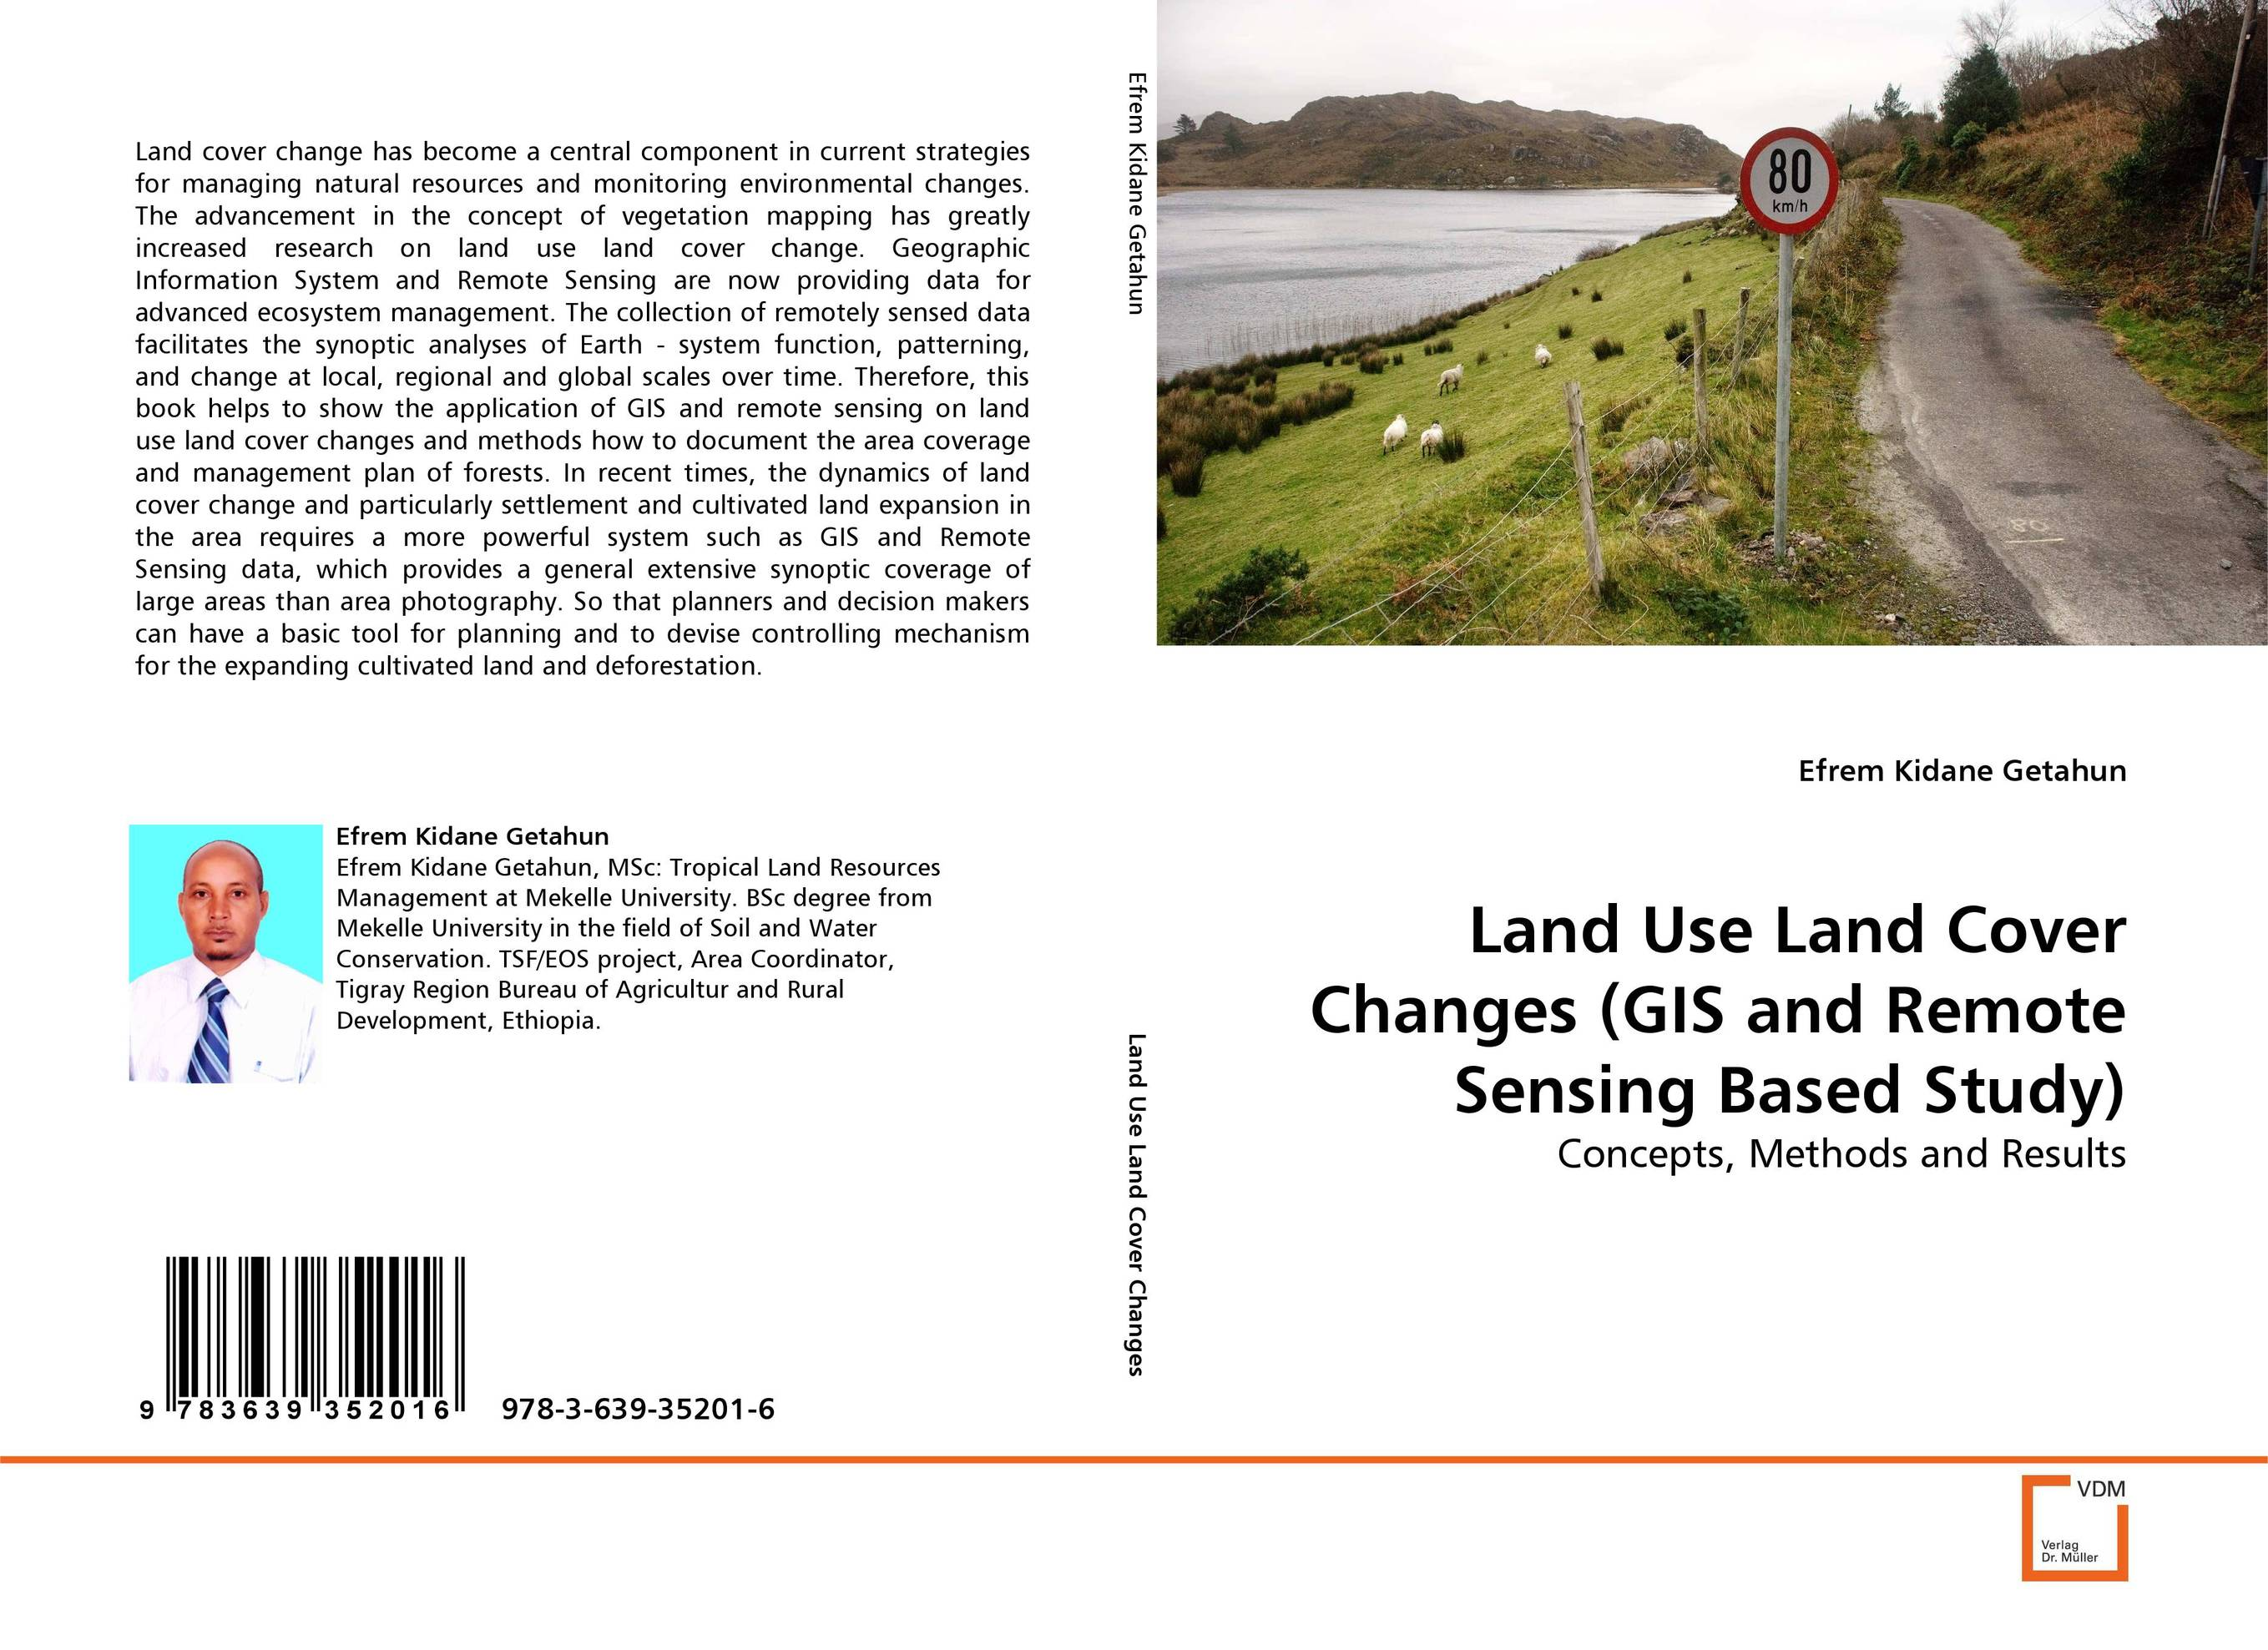 Land Use Land Cover Changes (GIS and Remote Sensing Based Study) geographic information system and remote sensing techniques on